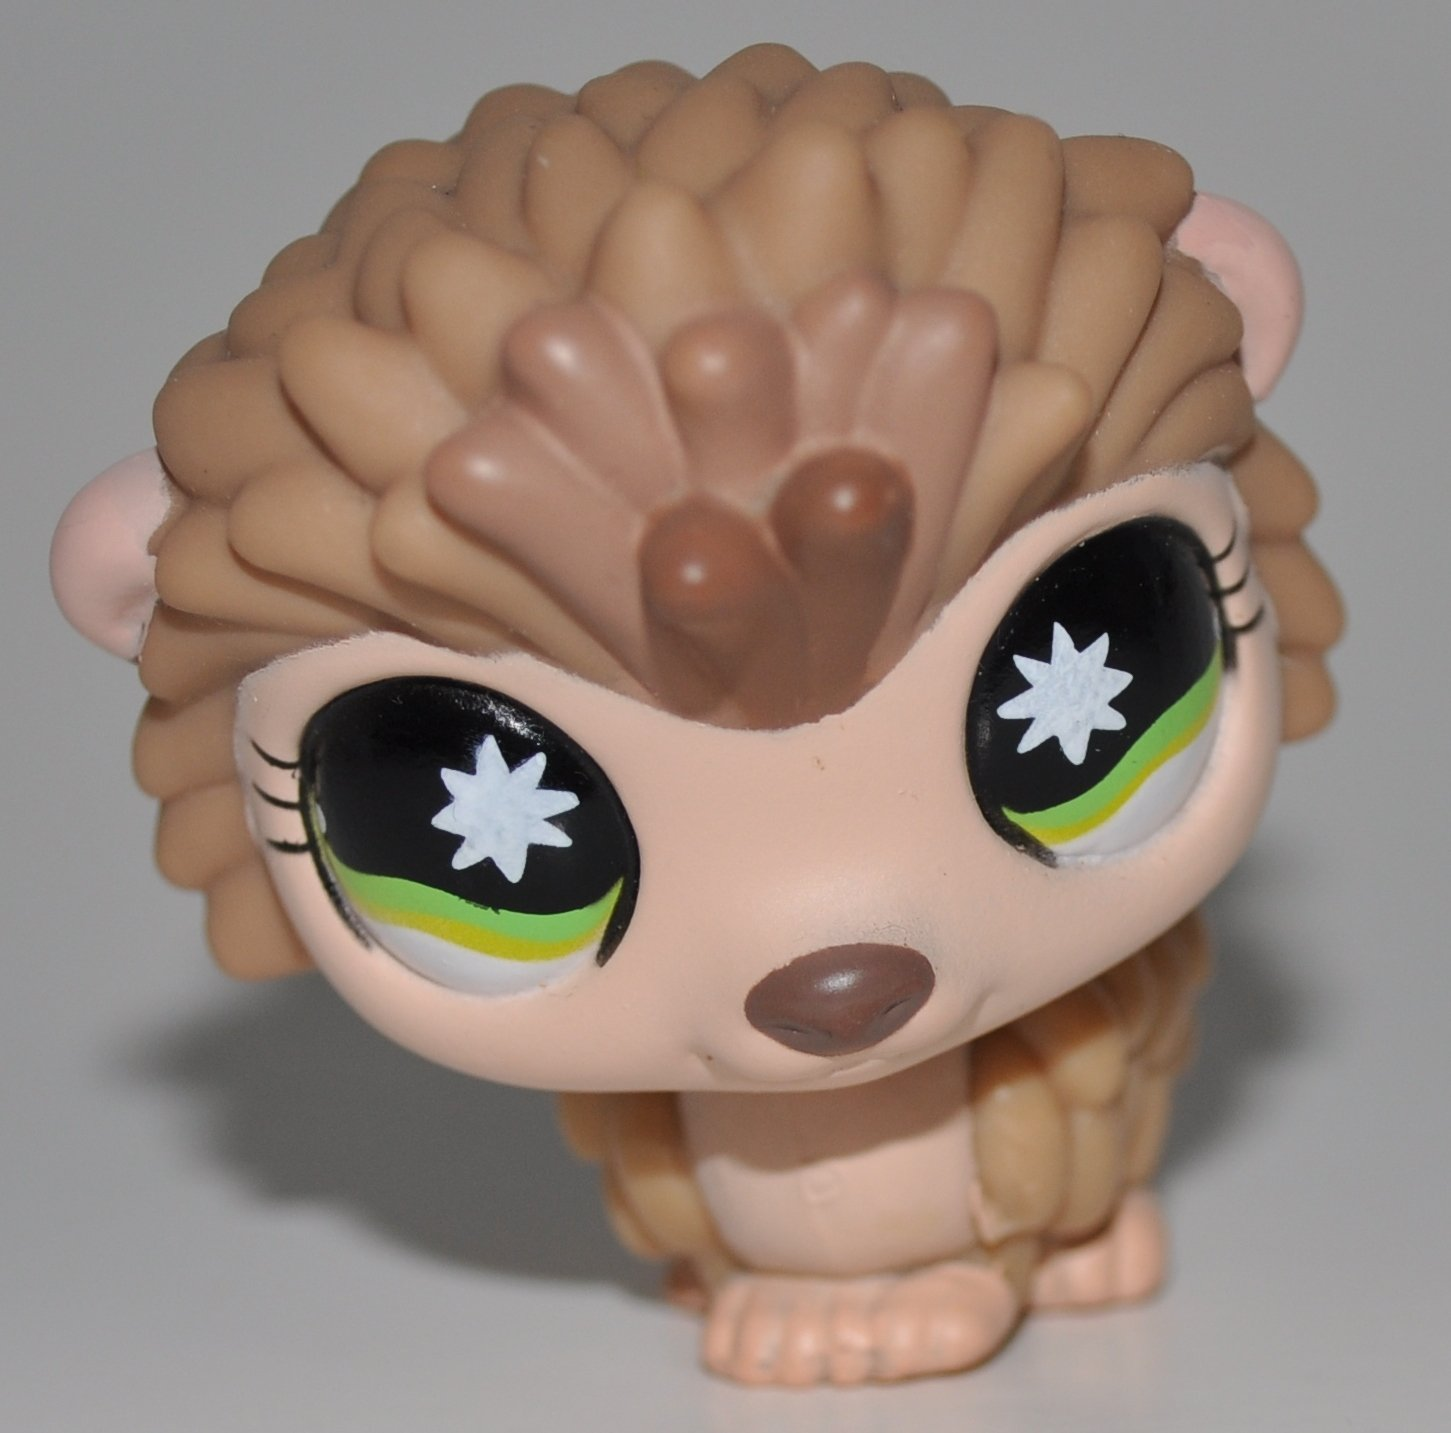 OOP Out of Package /& Print LPS Collectible Replacement Figure Porcupine #861 Loose Tan, Green Eyes Retired - Littlest Pet Shop Collector Toy